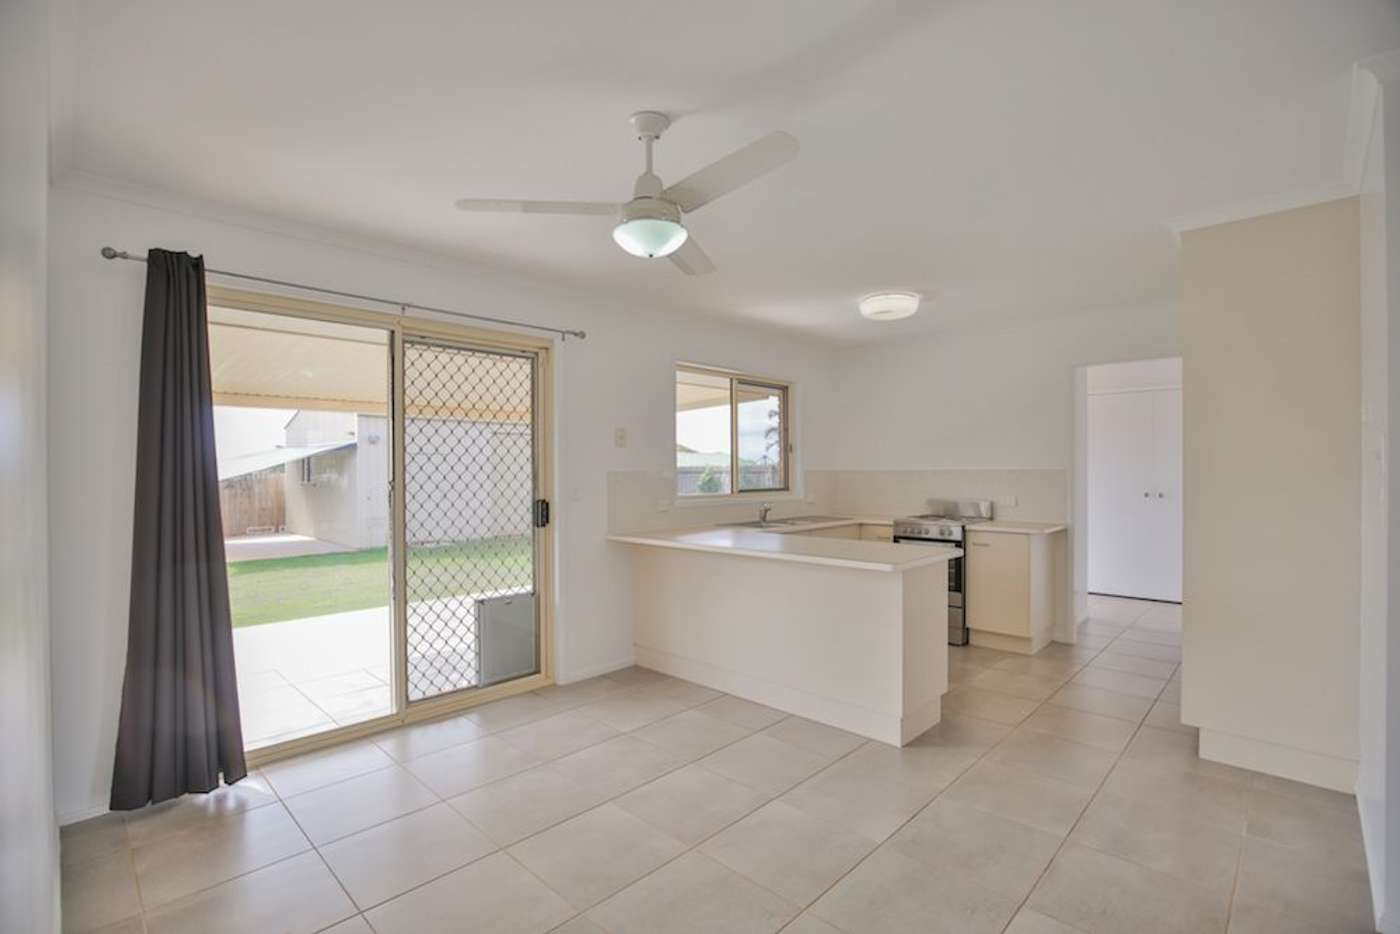 Sixth view of Homely house listing, 22 Seymore Avenue, Kalkie QLD 4670